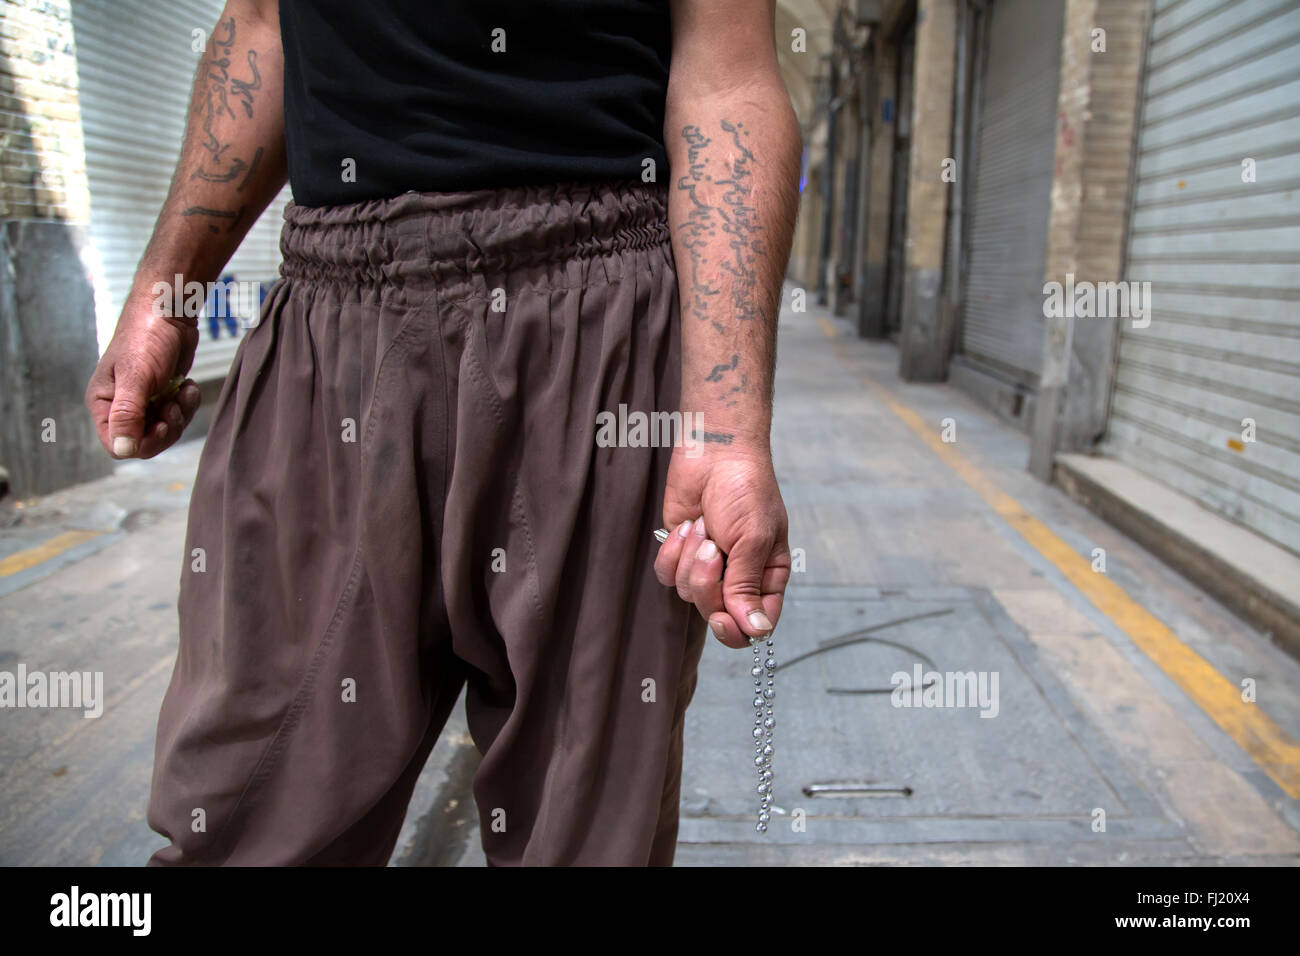 A man shows tattoos on his arms written in Persian in the grand bazaar of Tehran , Iran - Stock Image